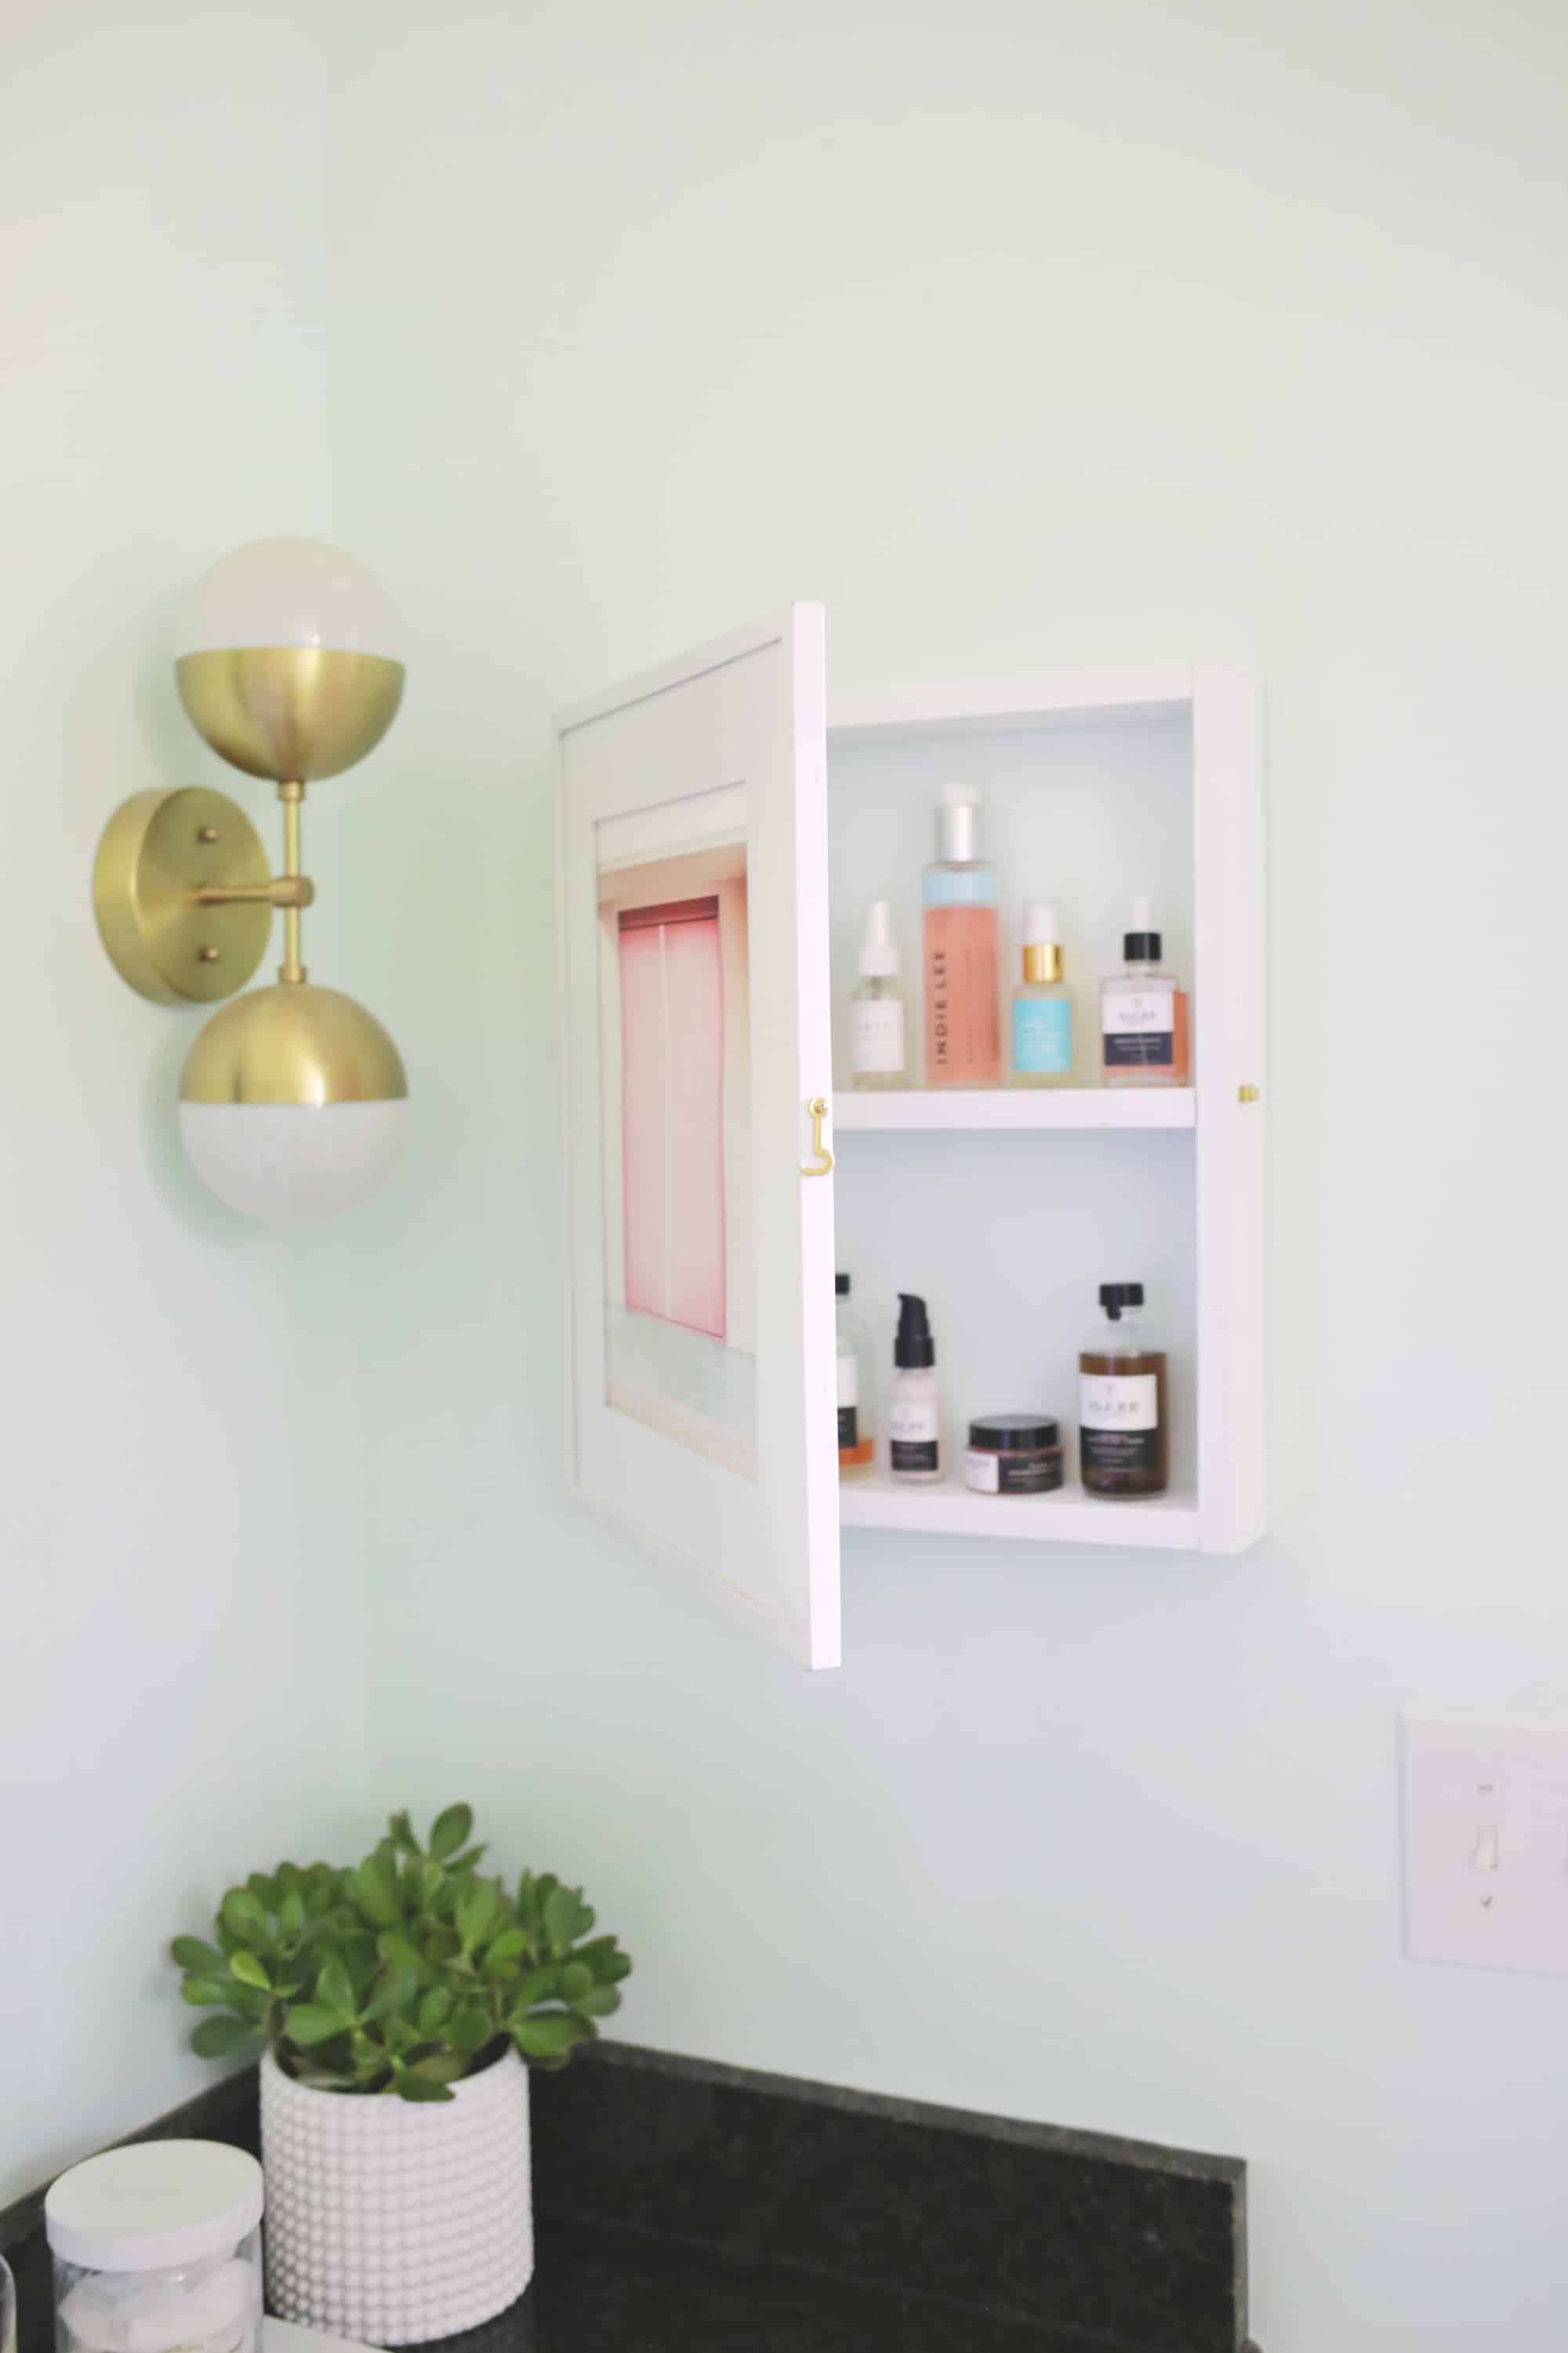 U201cIu0027ve Got Waaay Too Much Bathroom Storageu201d Said No One Ever U2026 Am I Right?!  I Installed This Hanging Makeup Storage And These DIY Marble Shelves To  Give My ...